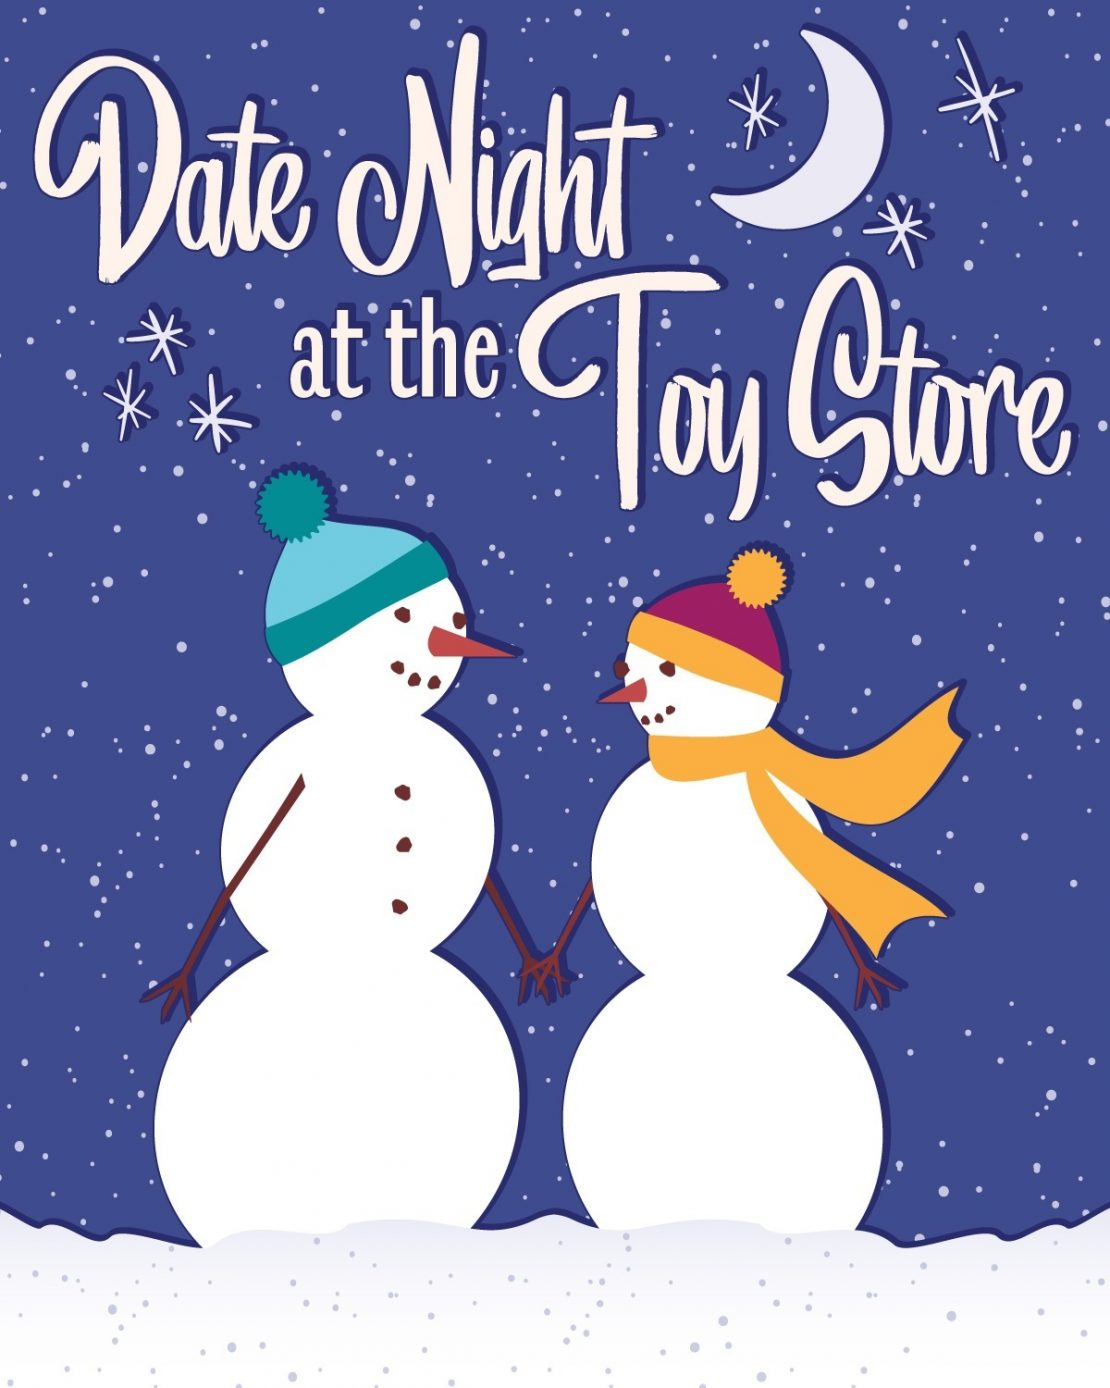 Date Night is Dec. 13th, 6 - 8 pm at Happy Up Edwardsville